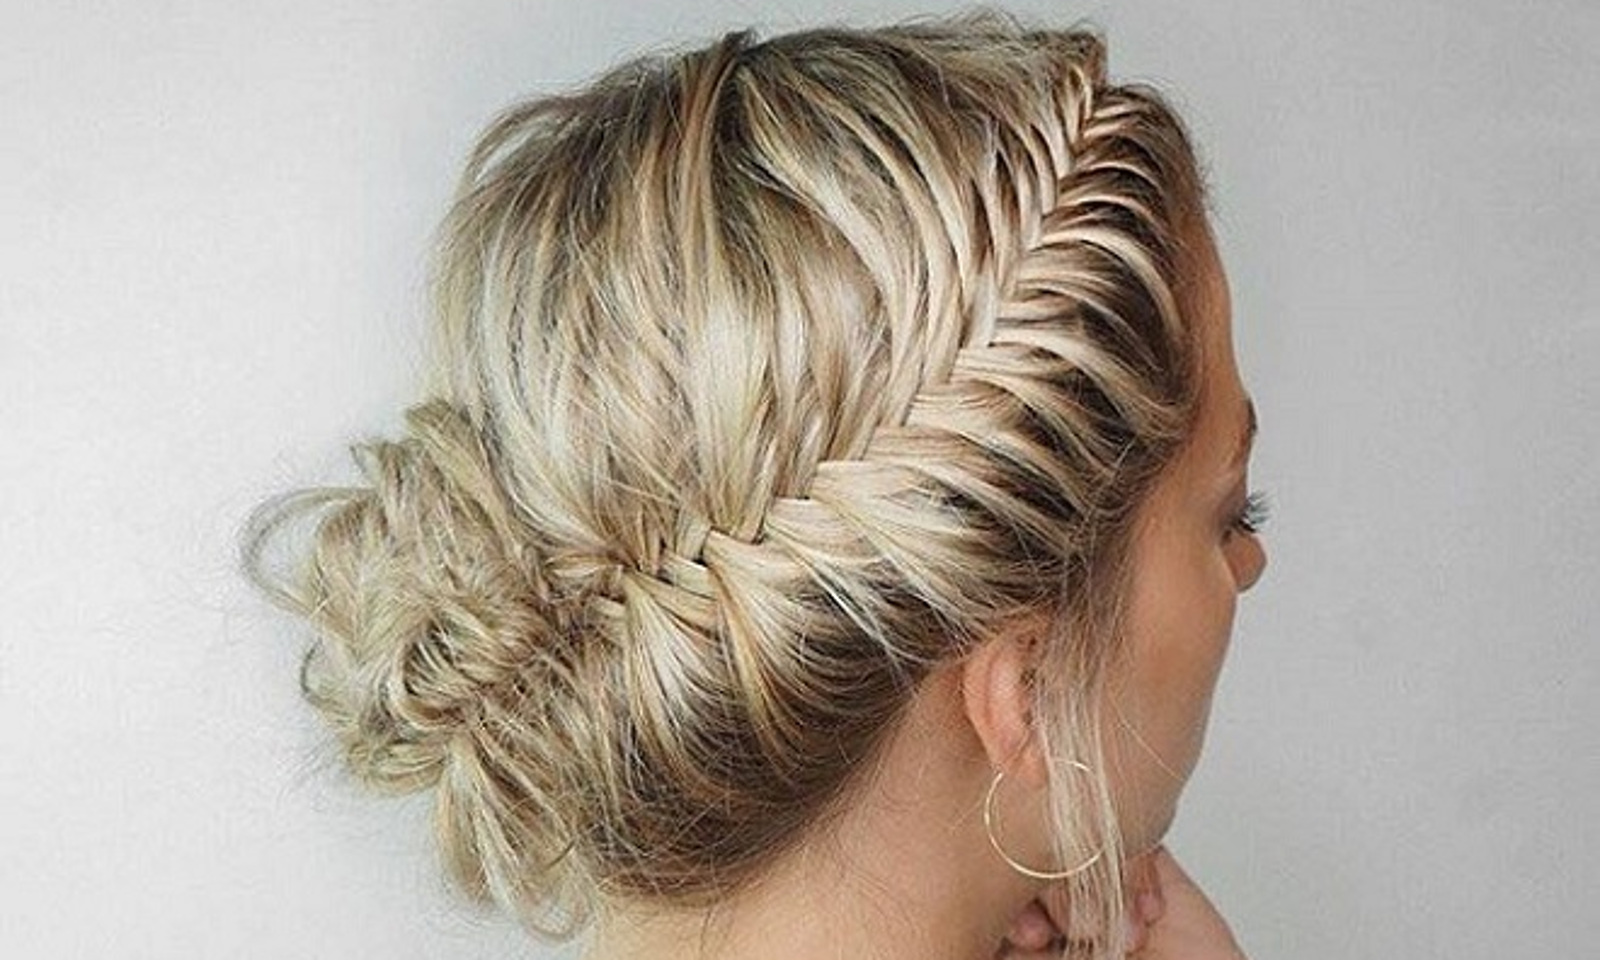 Watch 15 Ideas To Make Fishtail Braid Hairstyles That You'll Love video